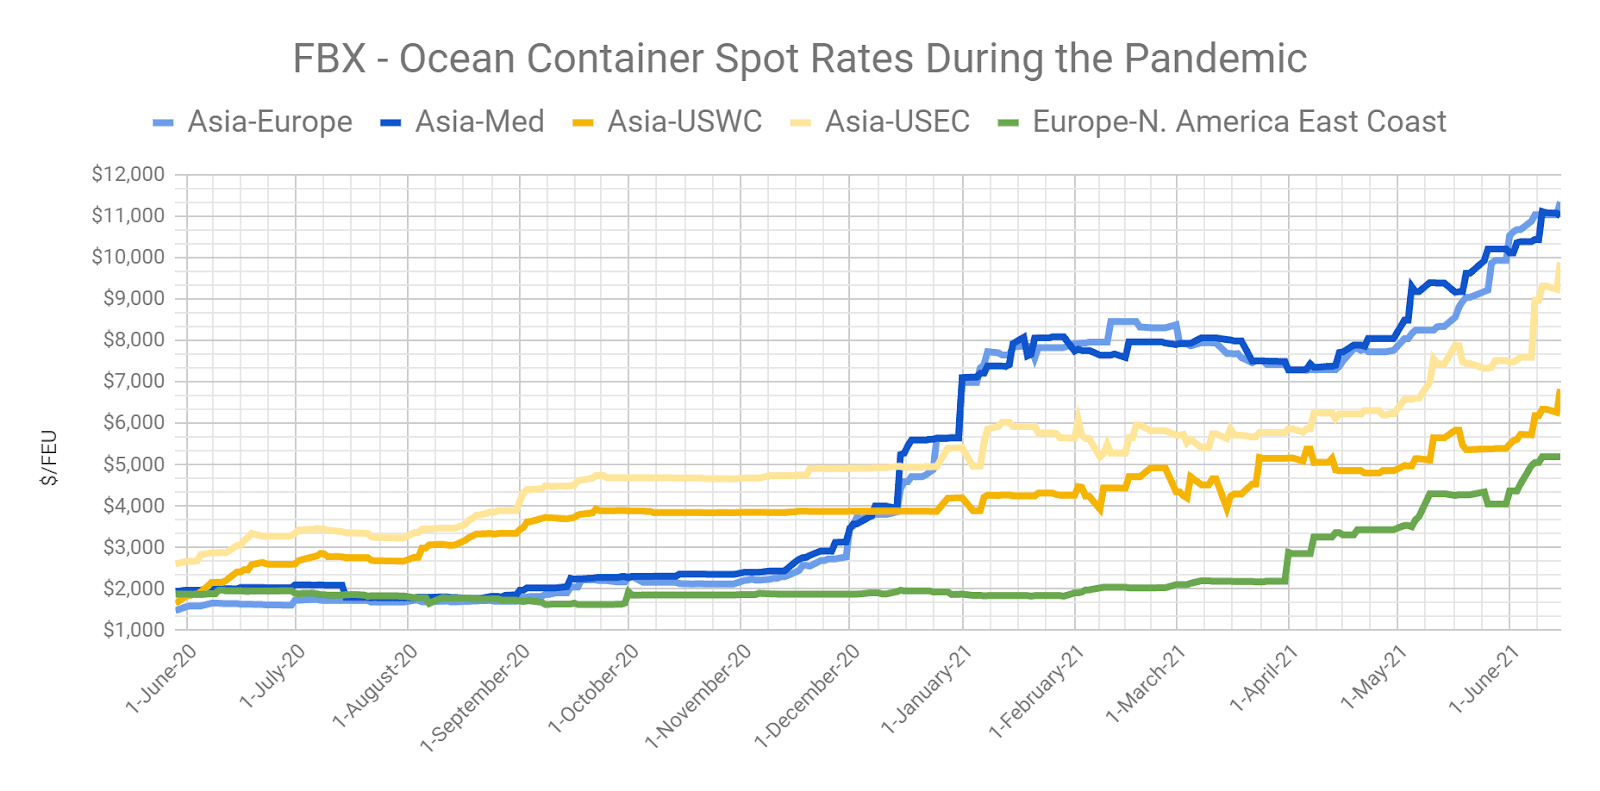 FBX-Ocean Container Spot Rates During the Pandemic